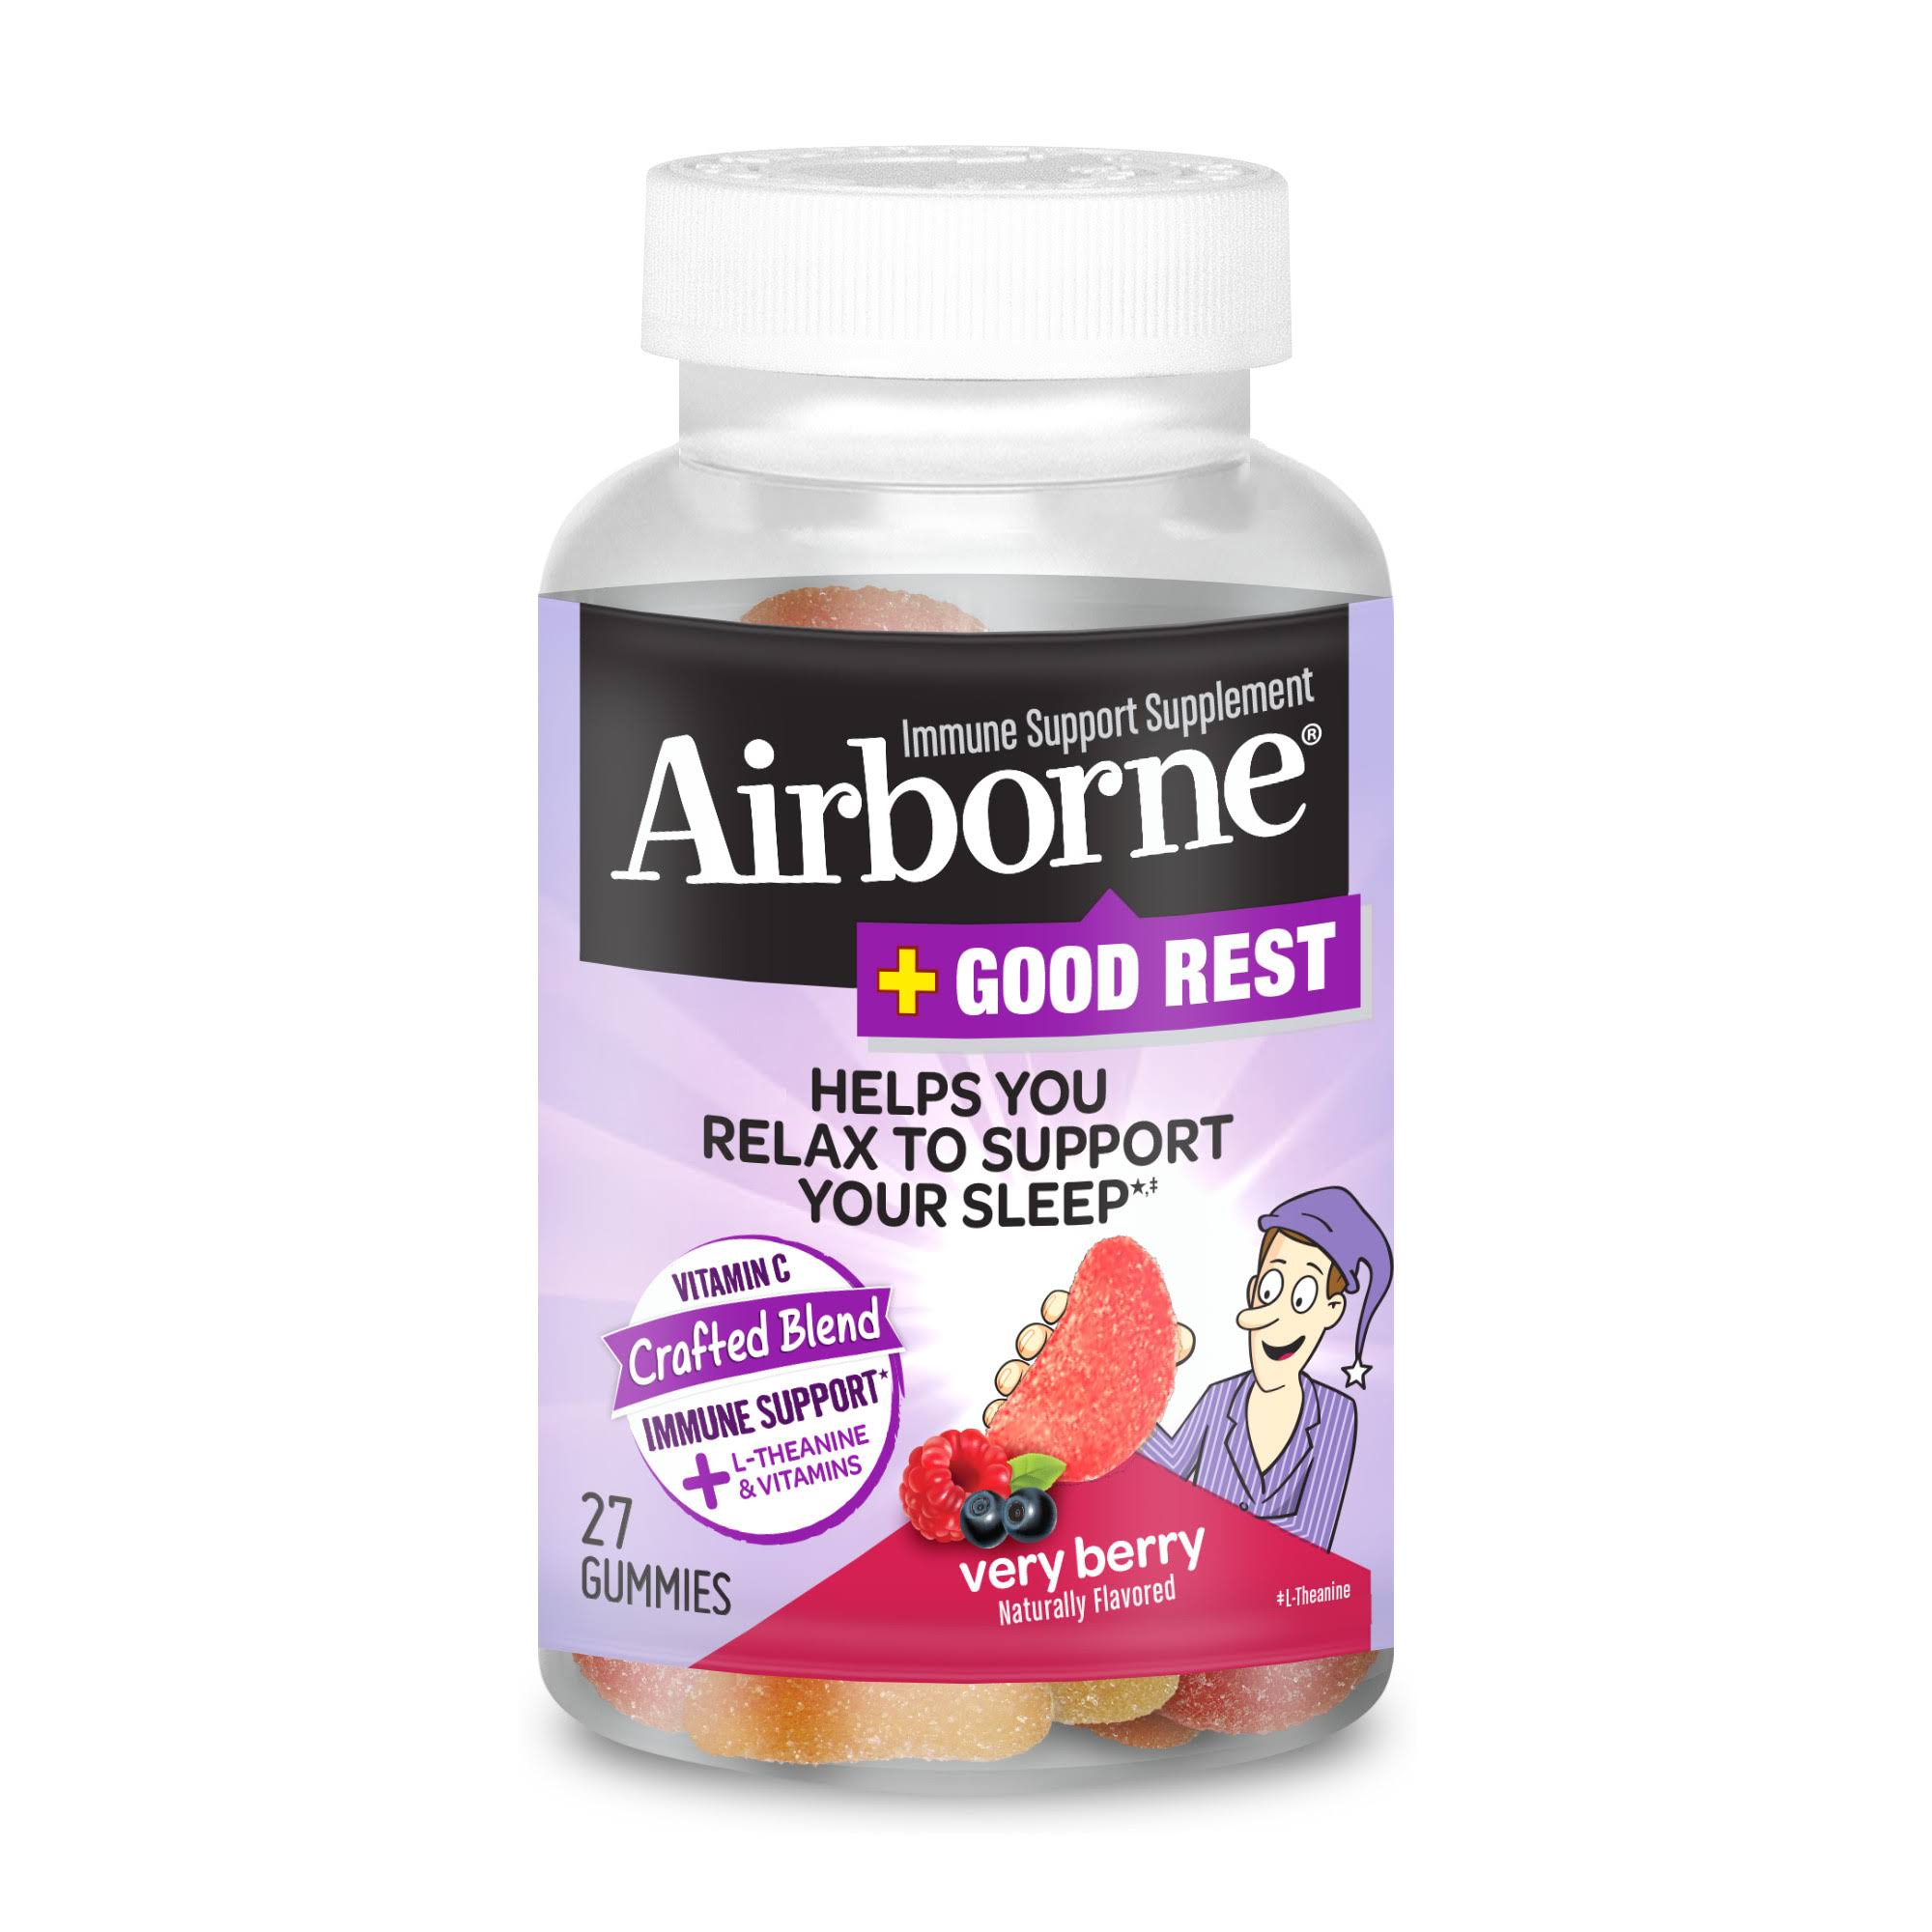 Airborne Vitamin C, Crafted Blend, Very Berry - 27 gummies